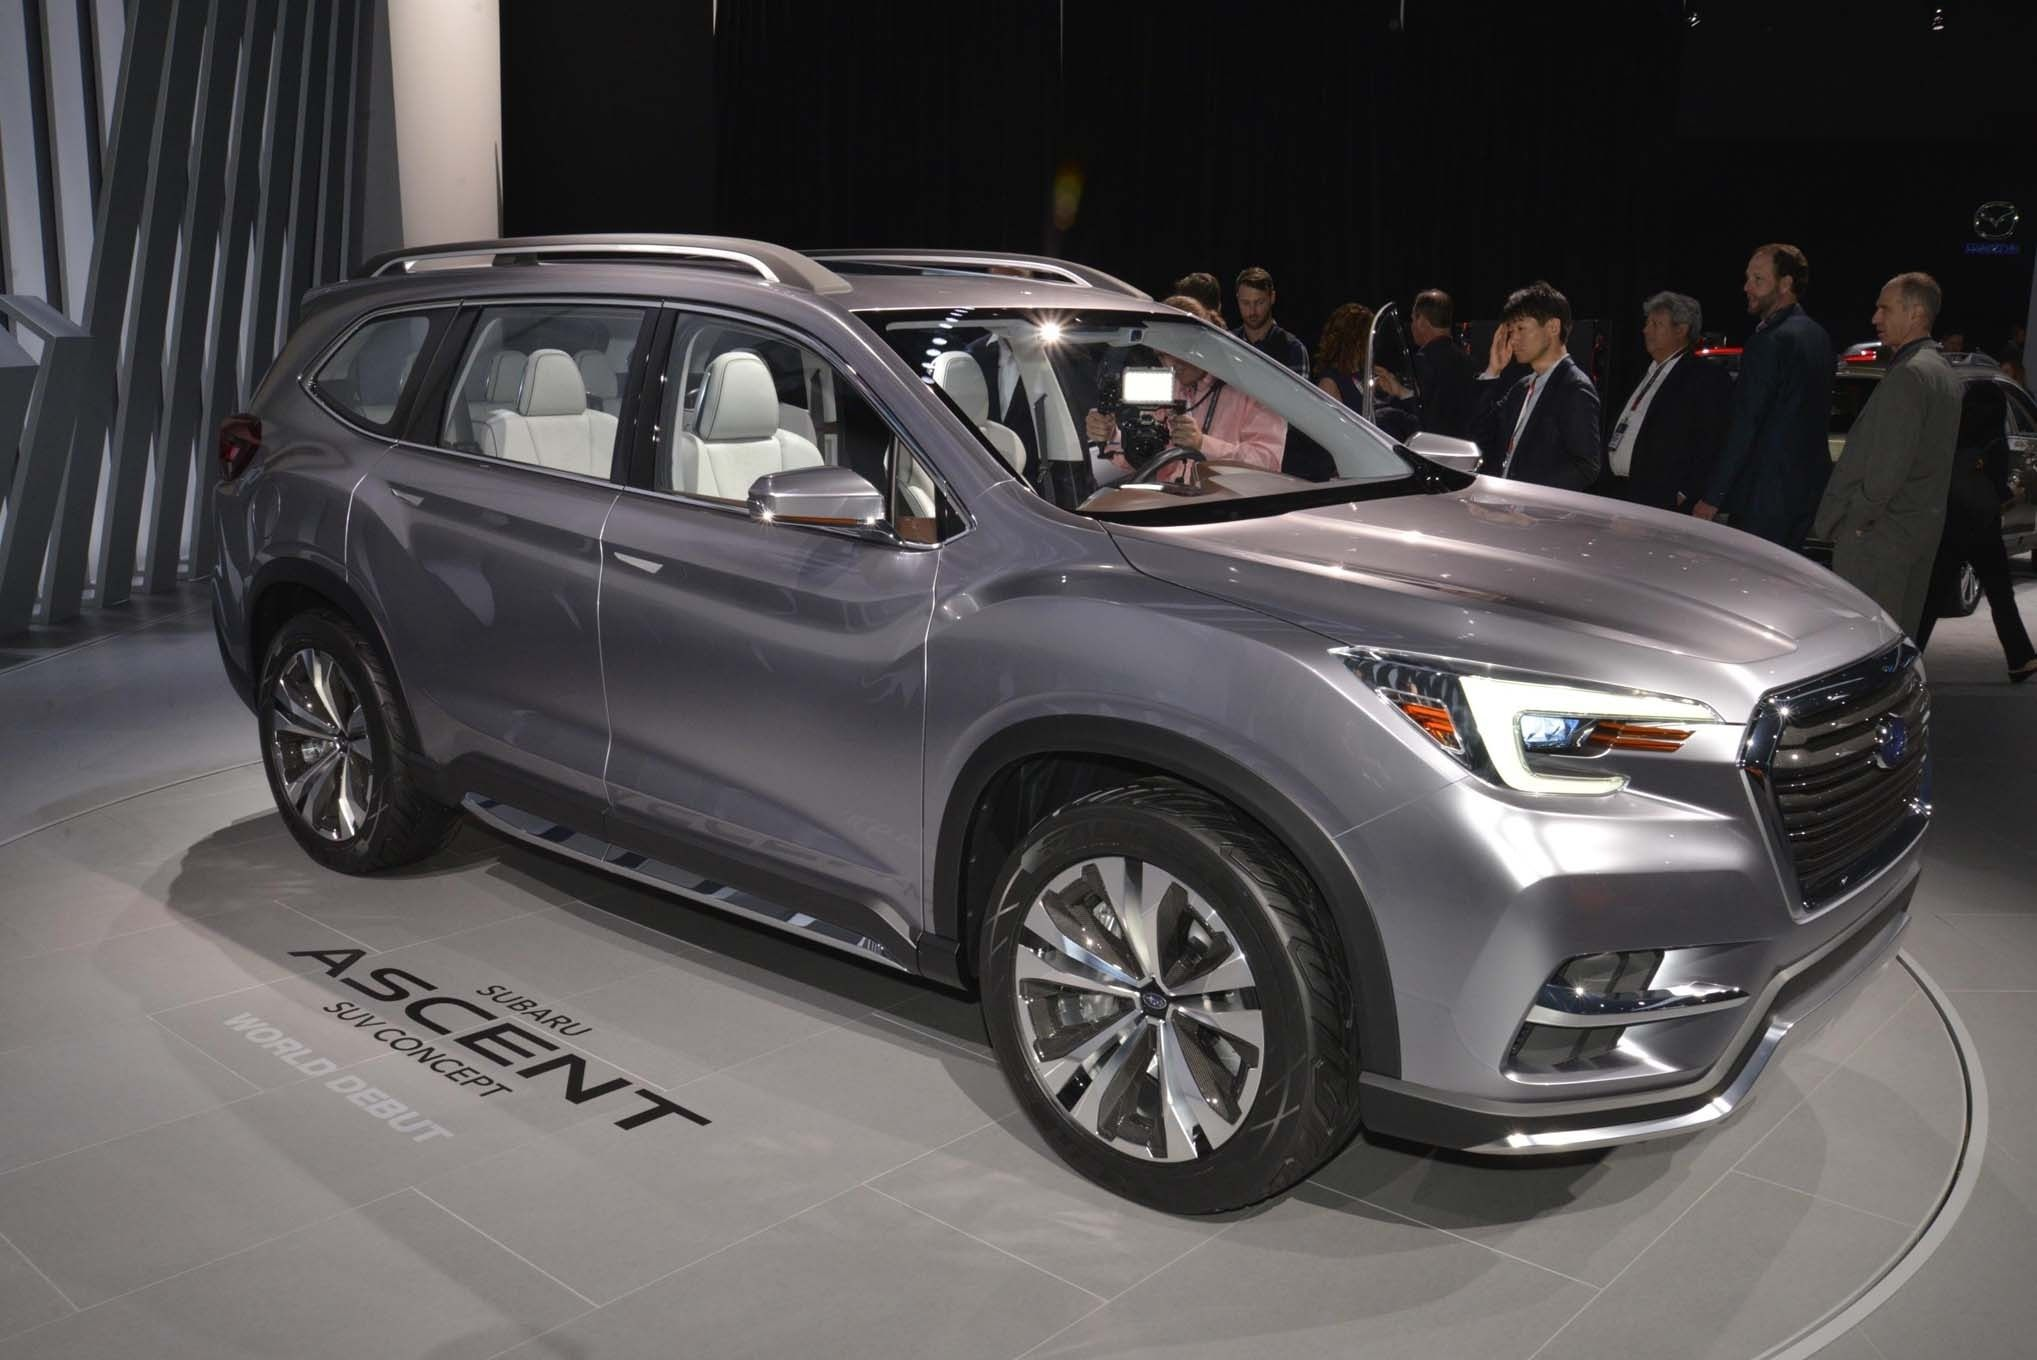 Subaru Outback Exterior And Interior Review Car And Home - Invoice price subaru outback 2018